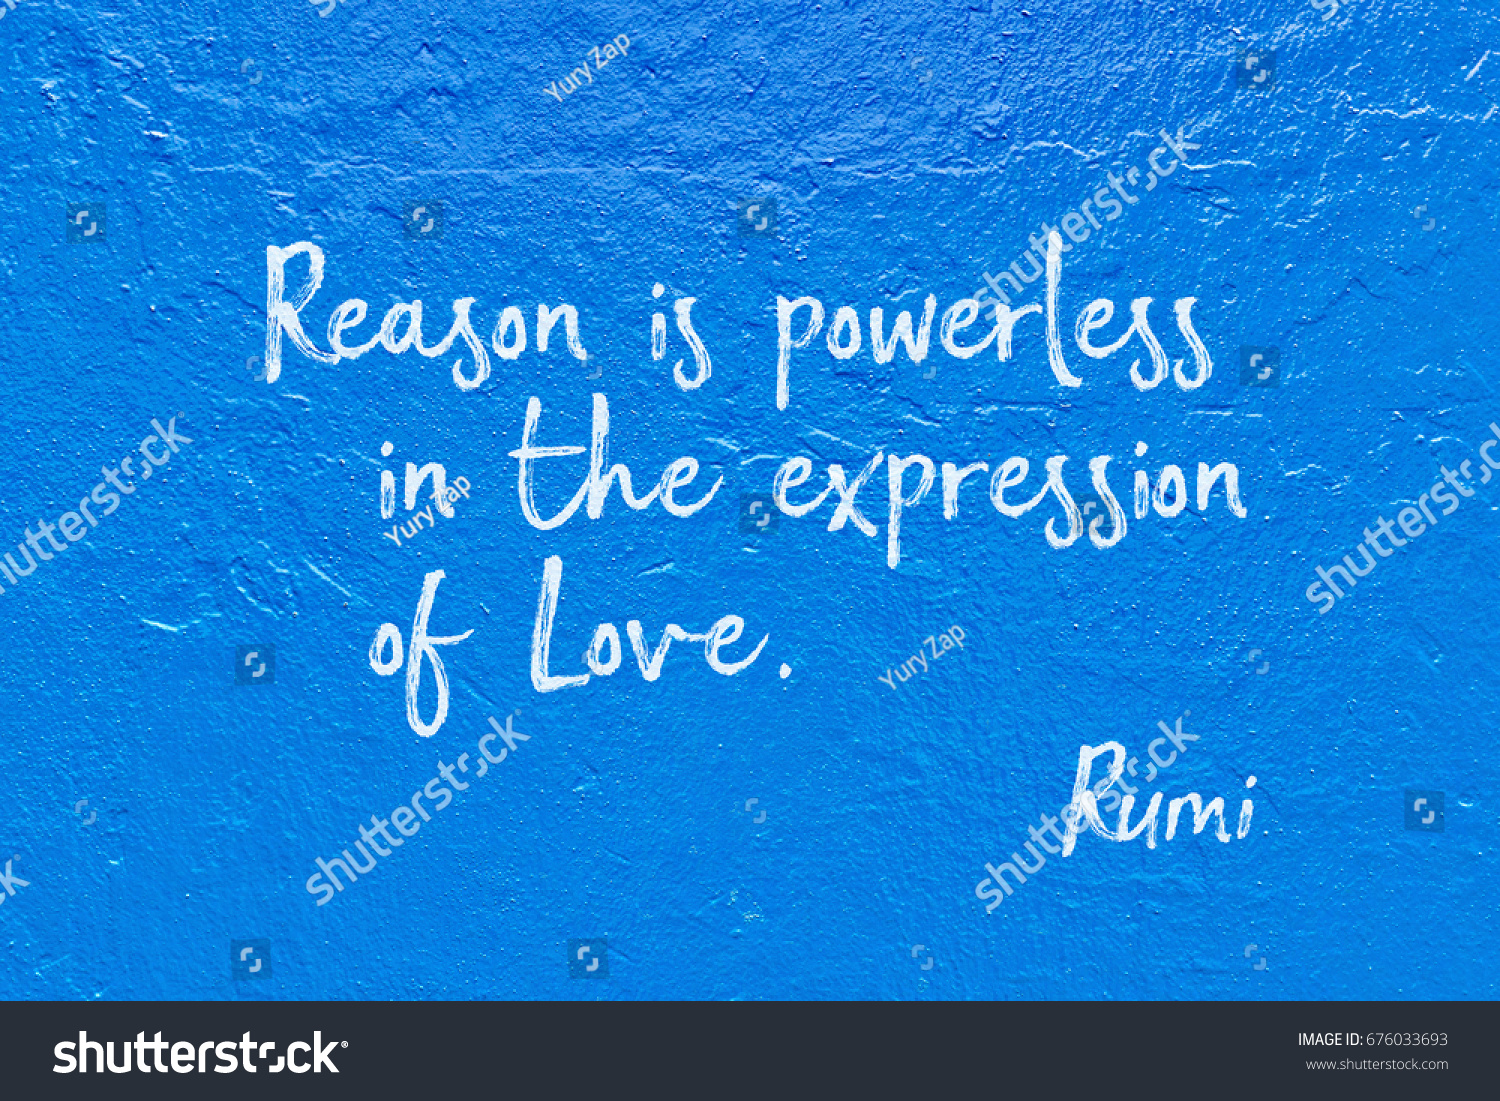 Reason is powerless in the expression of Love ancient Persian poet and philosopher Rumi quote